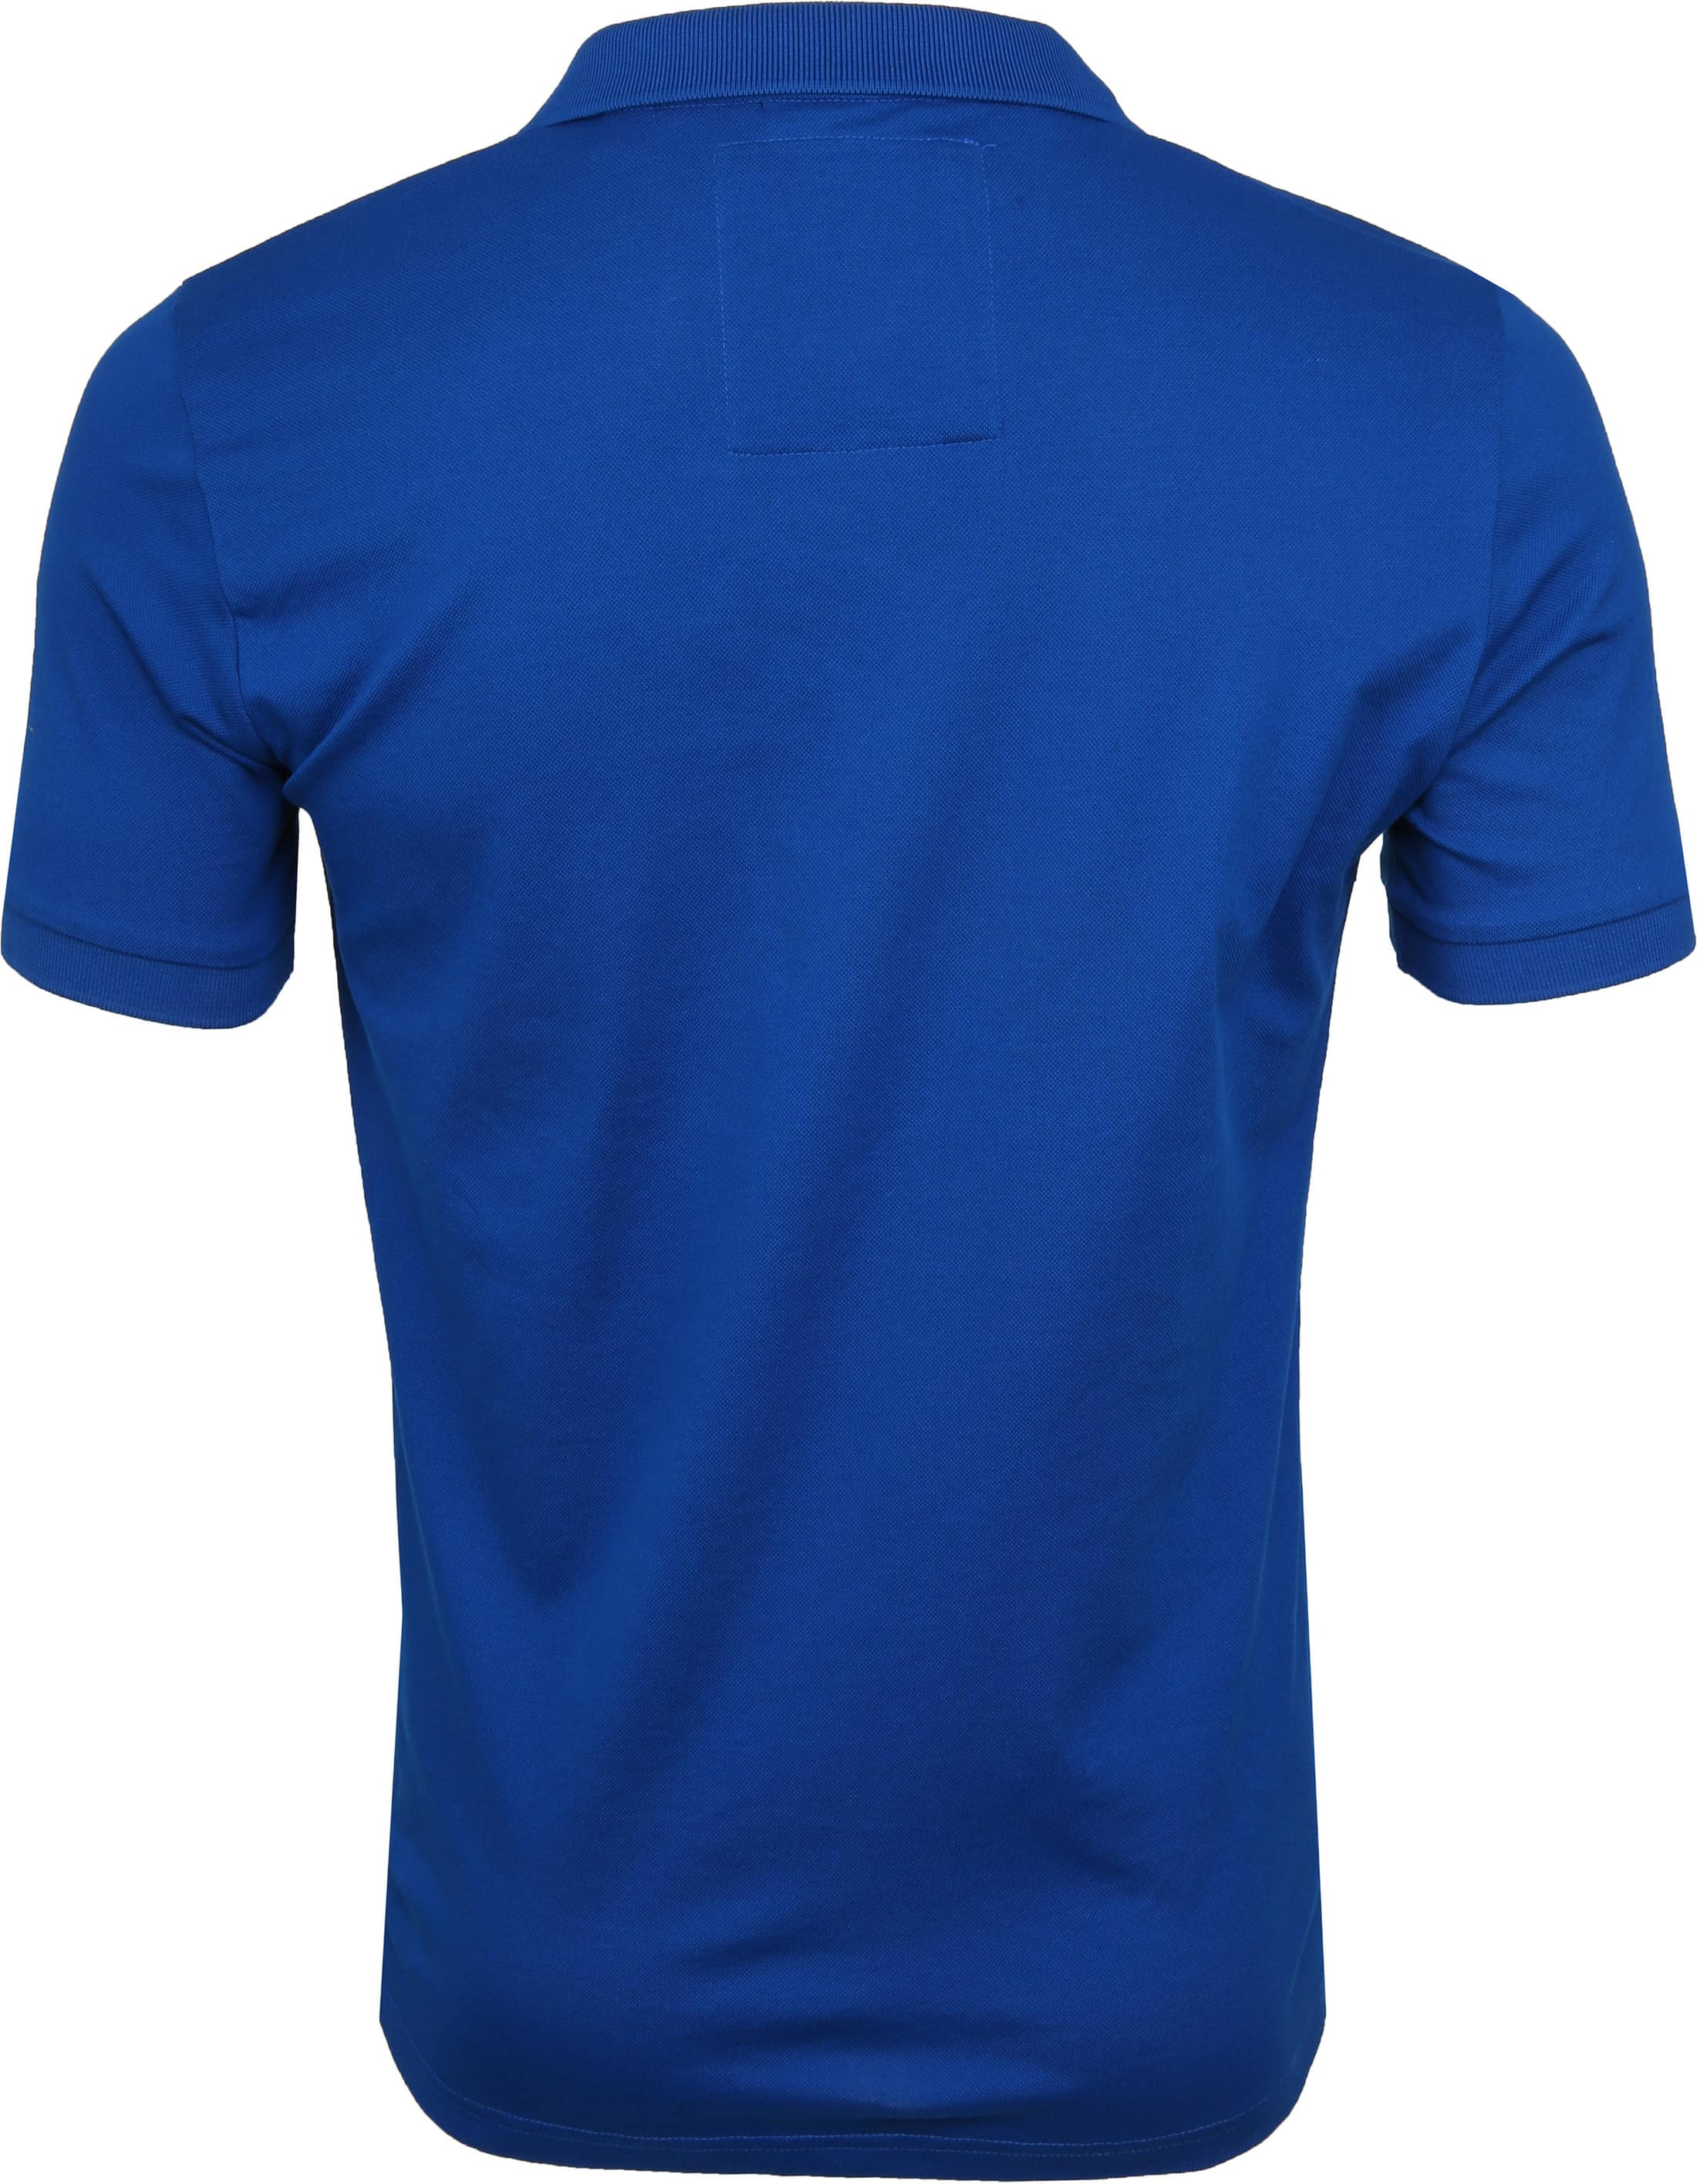 Superdry Poloshirt Mercerised Cobalt Blue foto 4